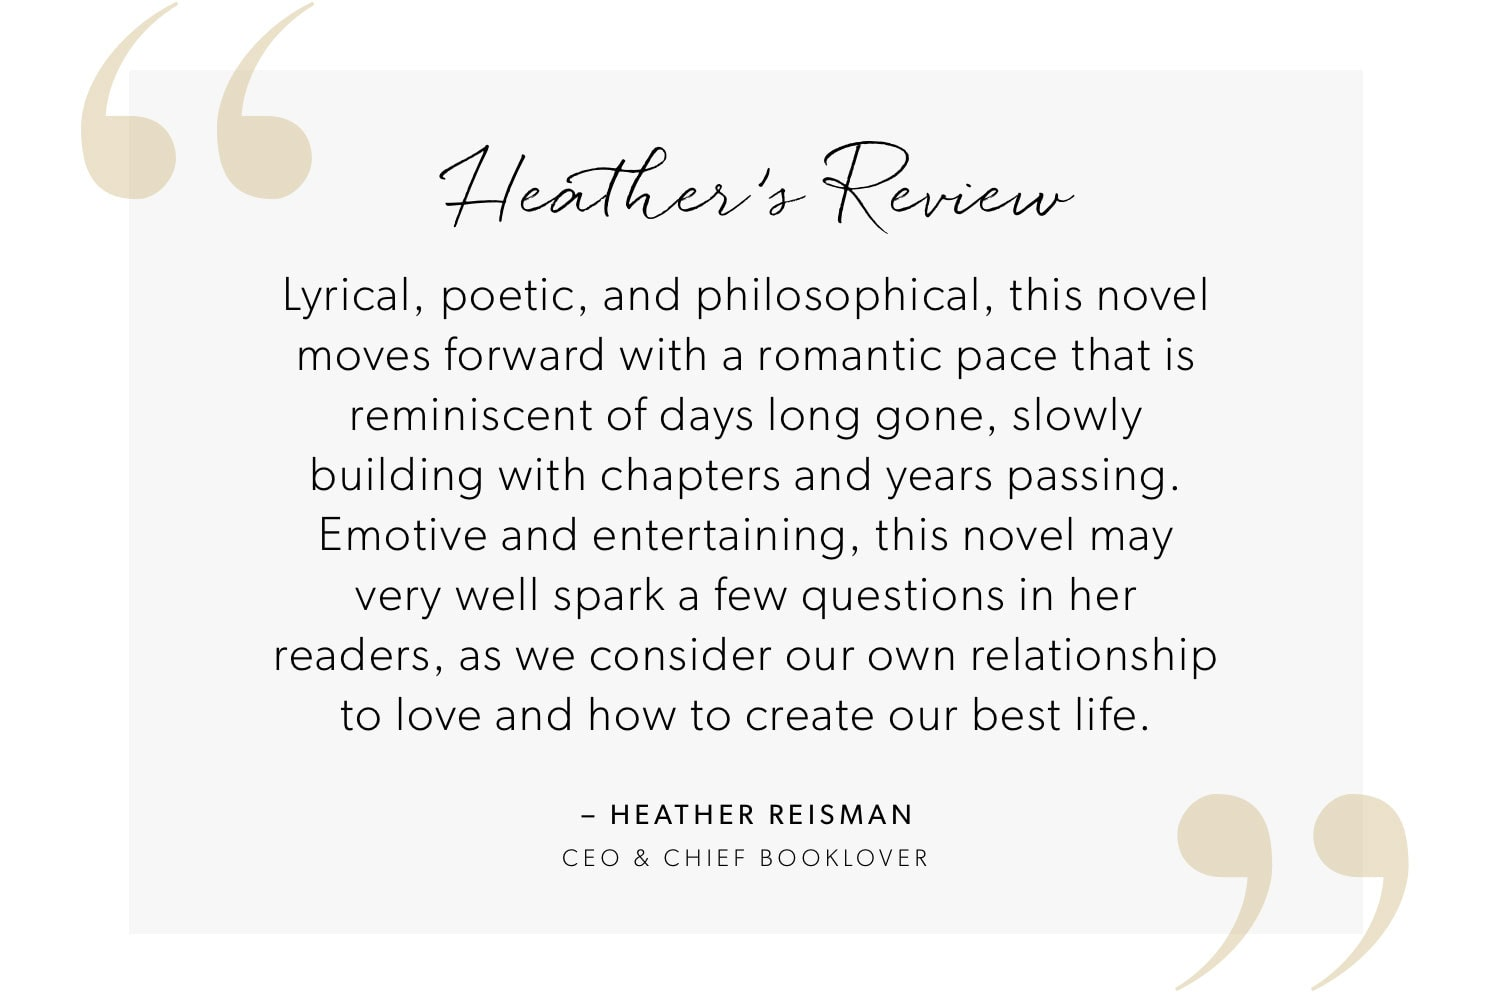 Heather's Review